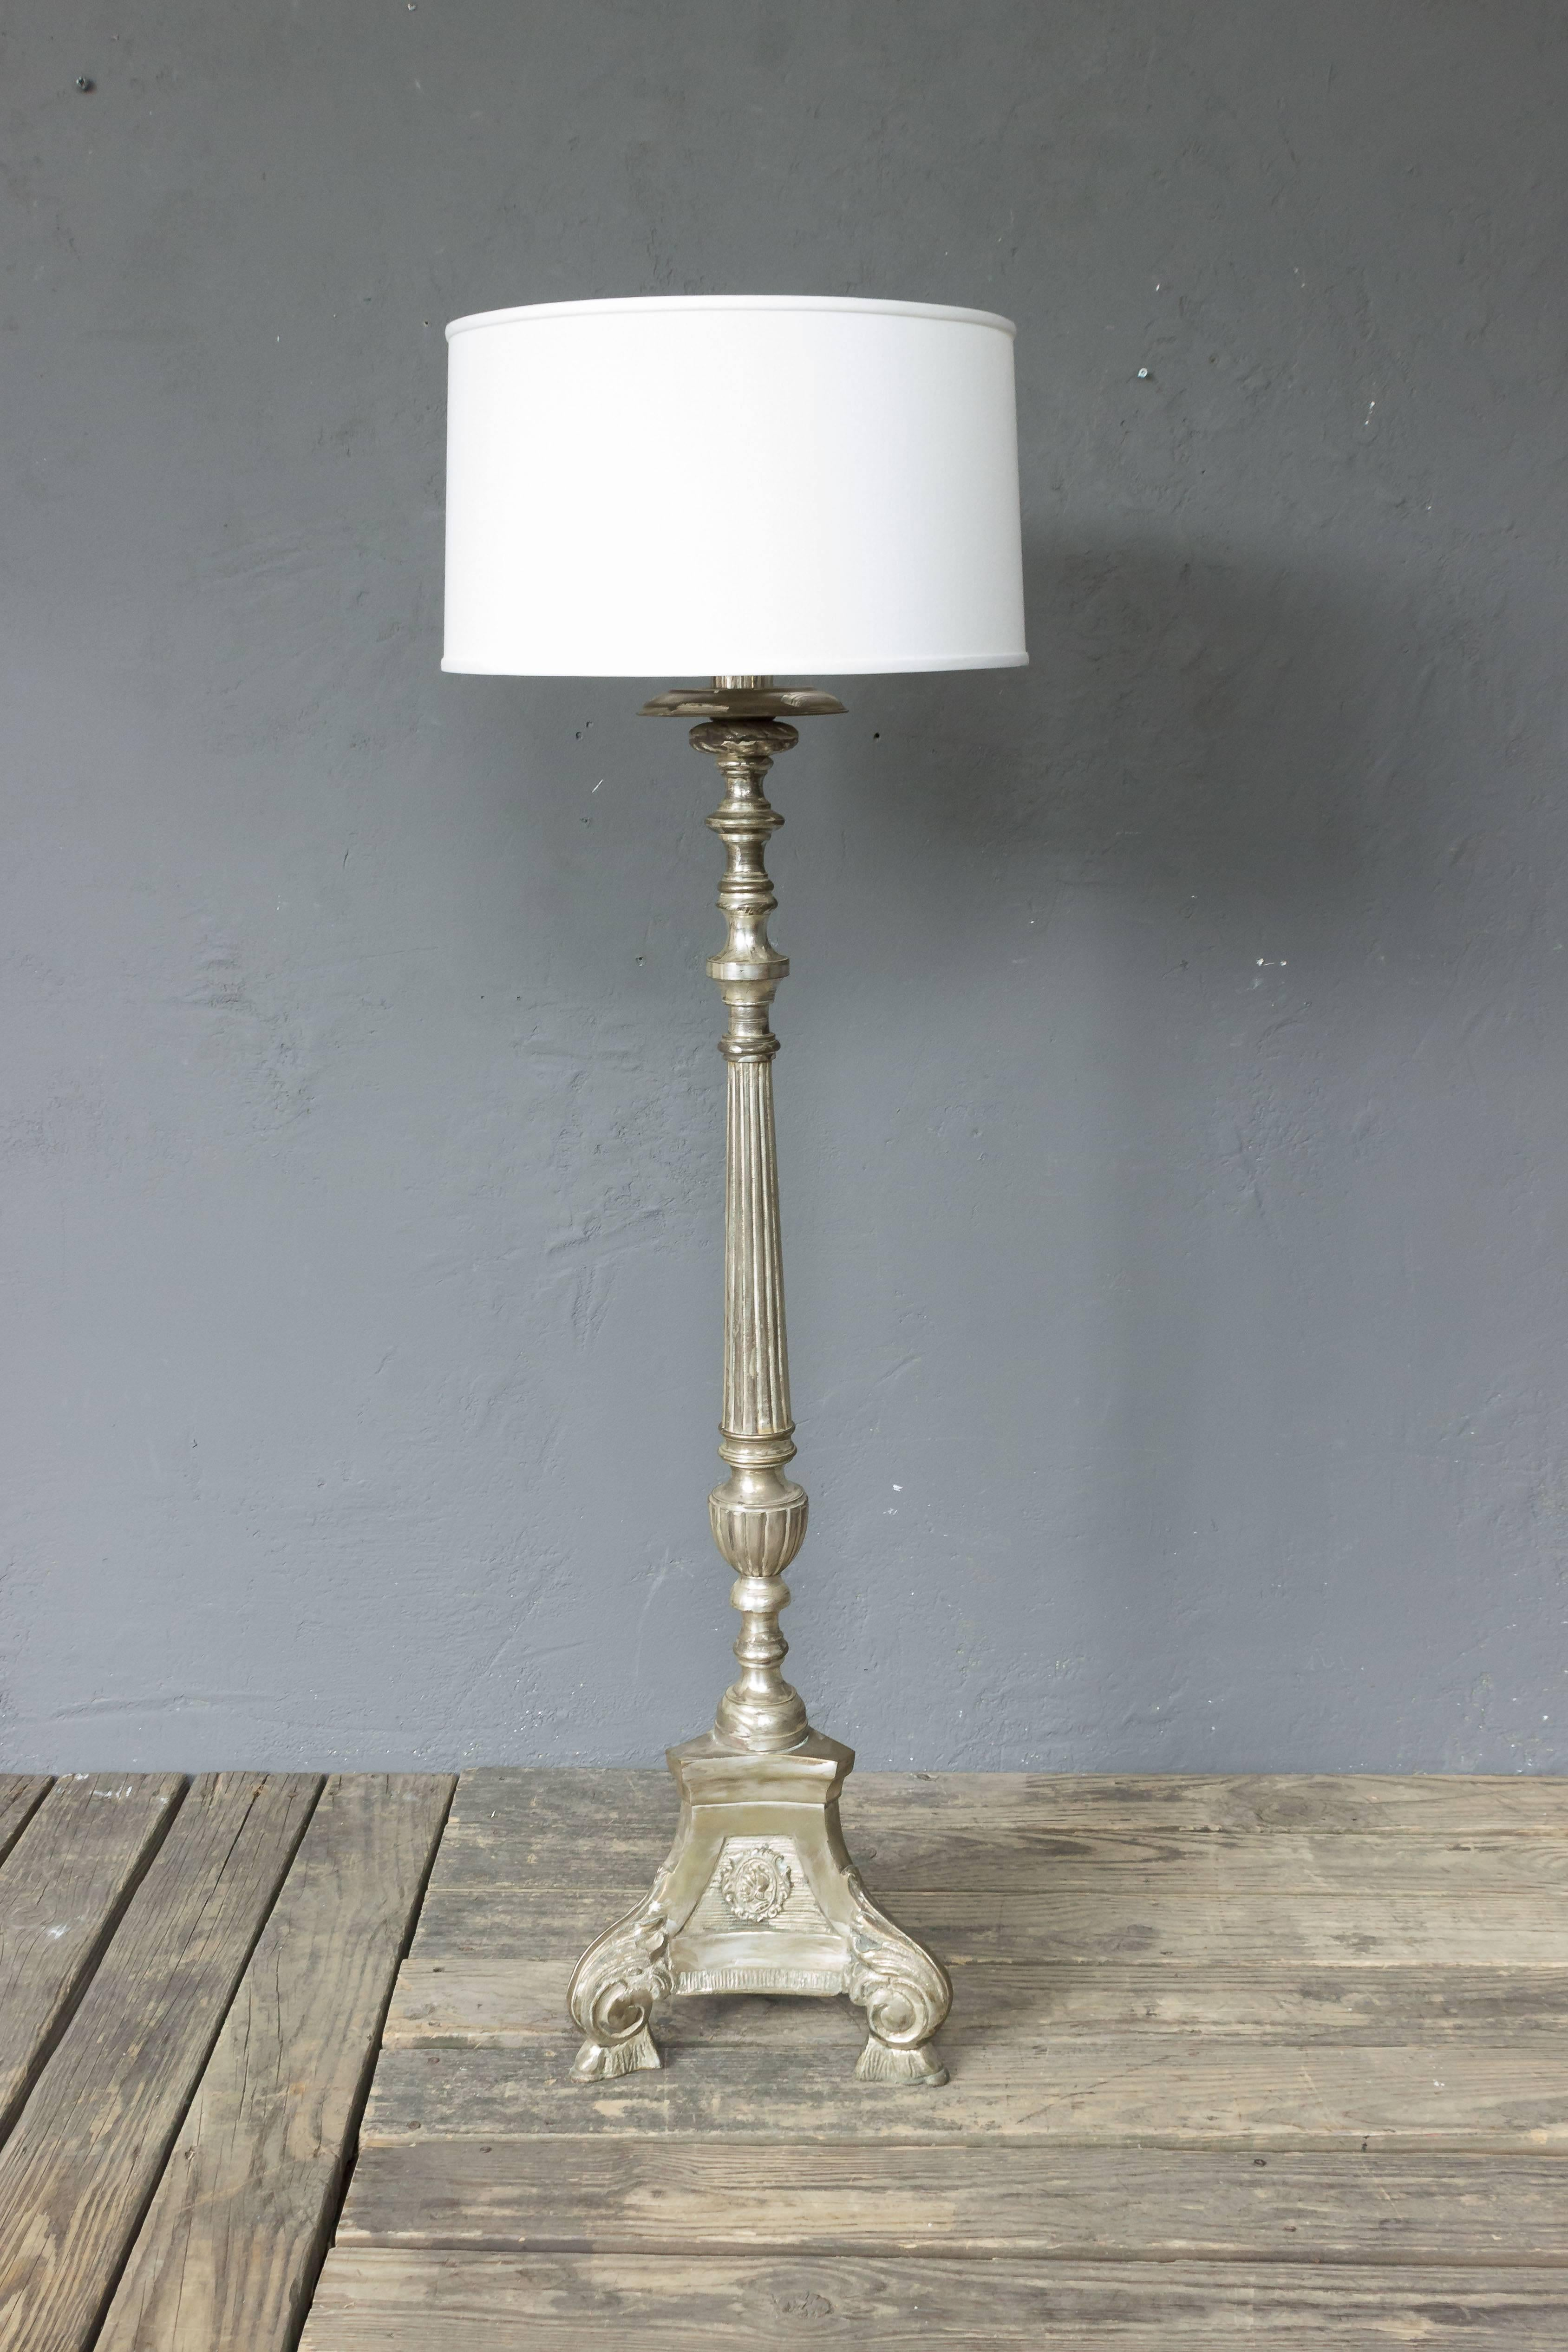 Wiring A Lamp In Spain Schematic Diagrams Bedside Spanish Silvered Floor The Baroque Style For Sale At 1stdibs Light Switch